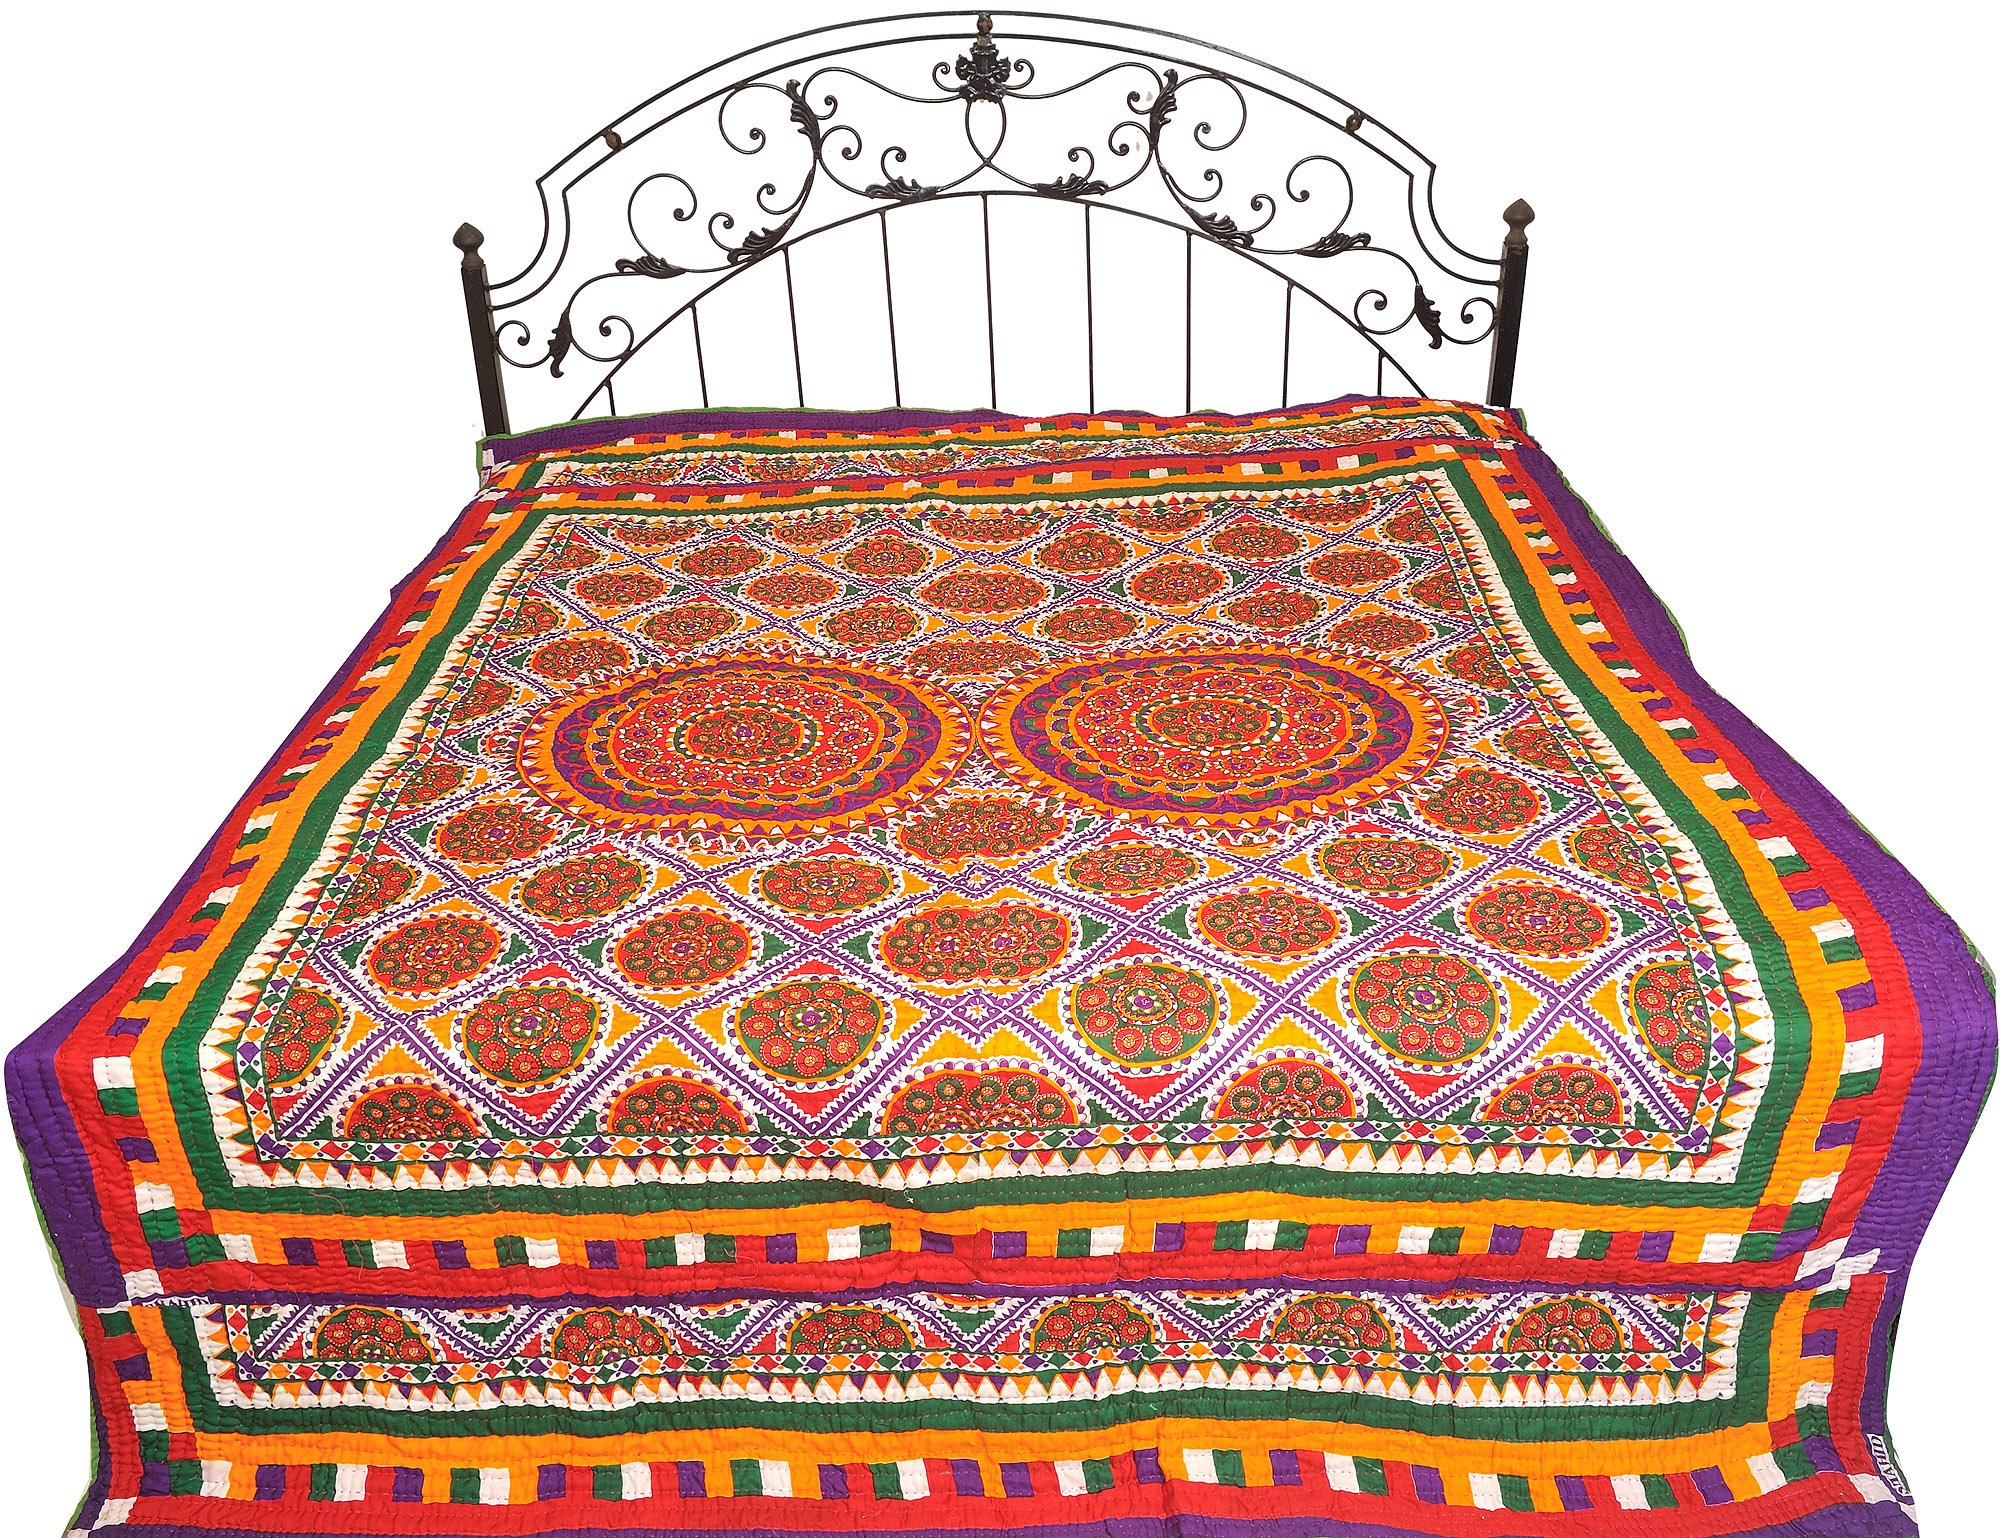 Multicolor Bedcover from Jodhpur with Printed Chakras and Kantha Stitch - Pure Cotton